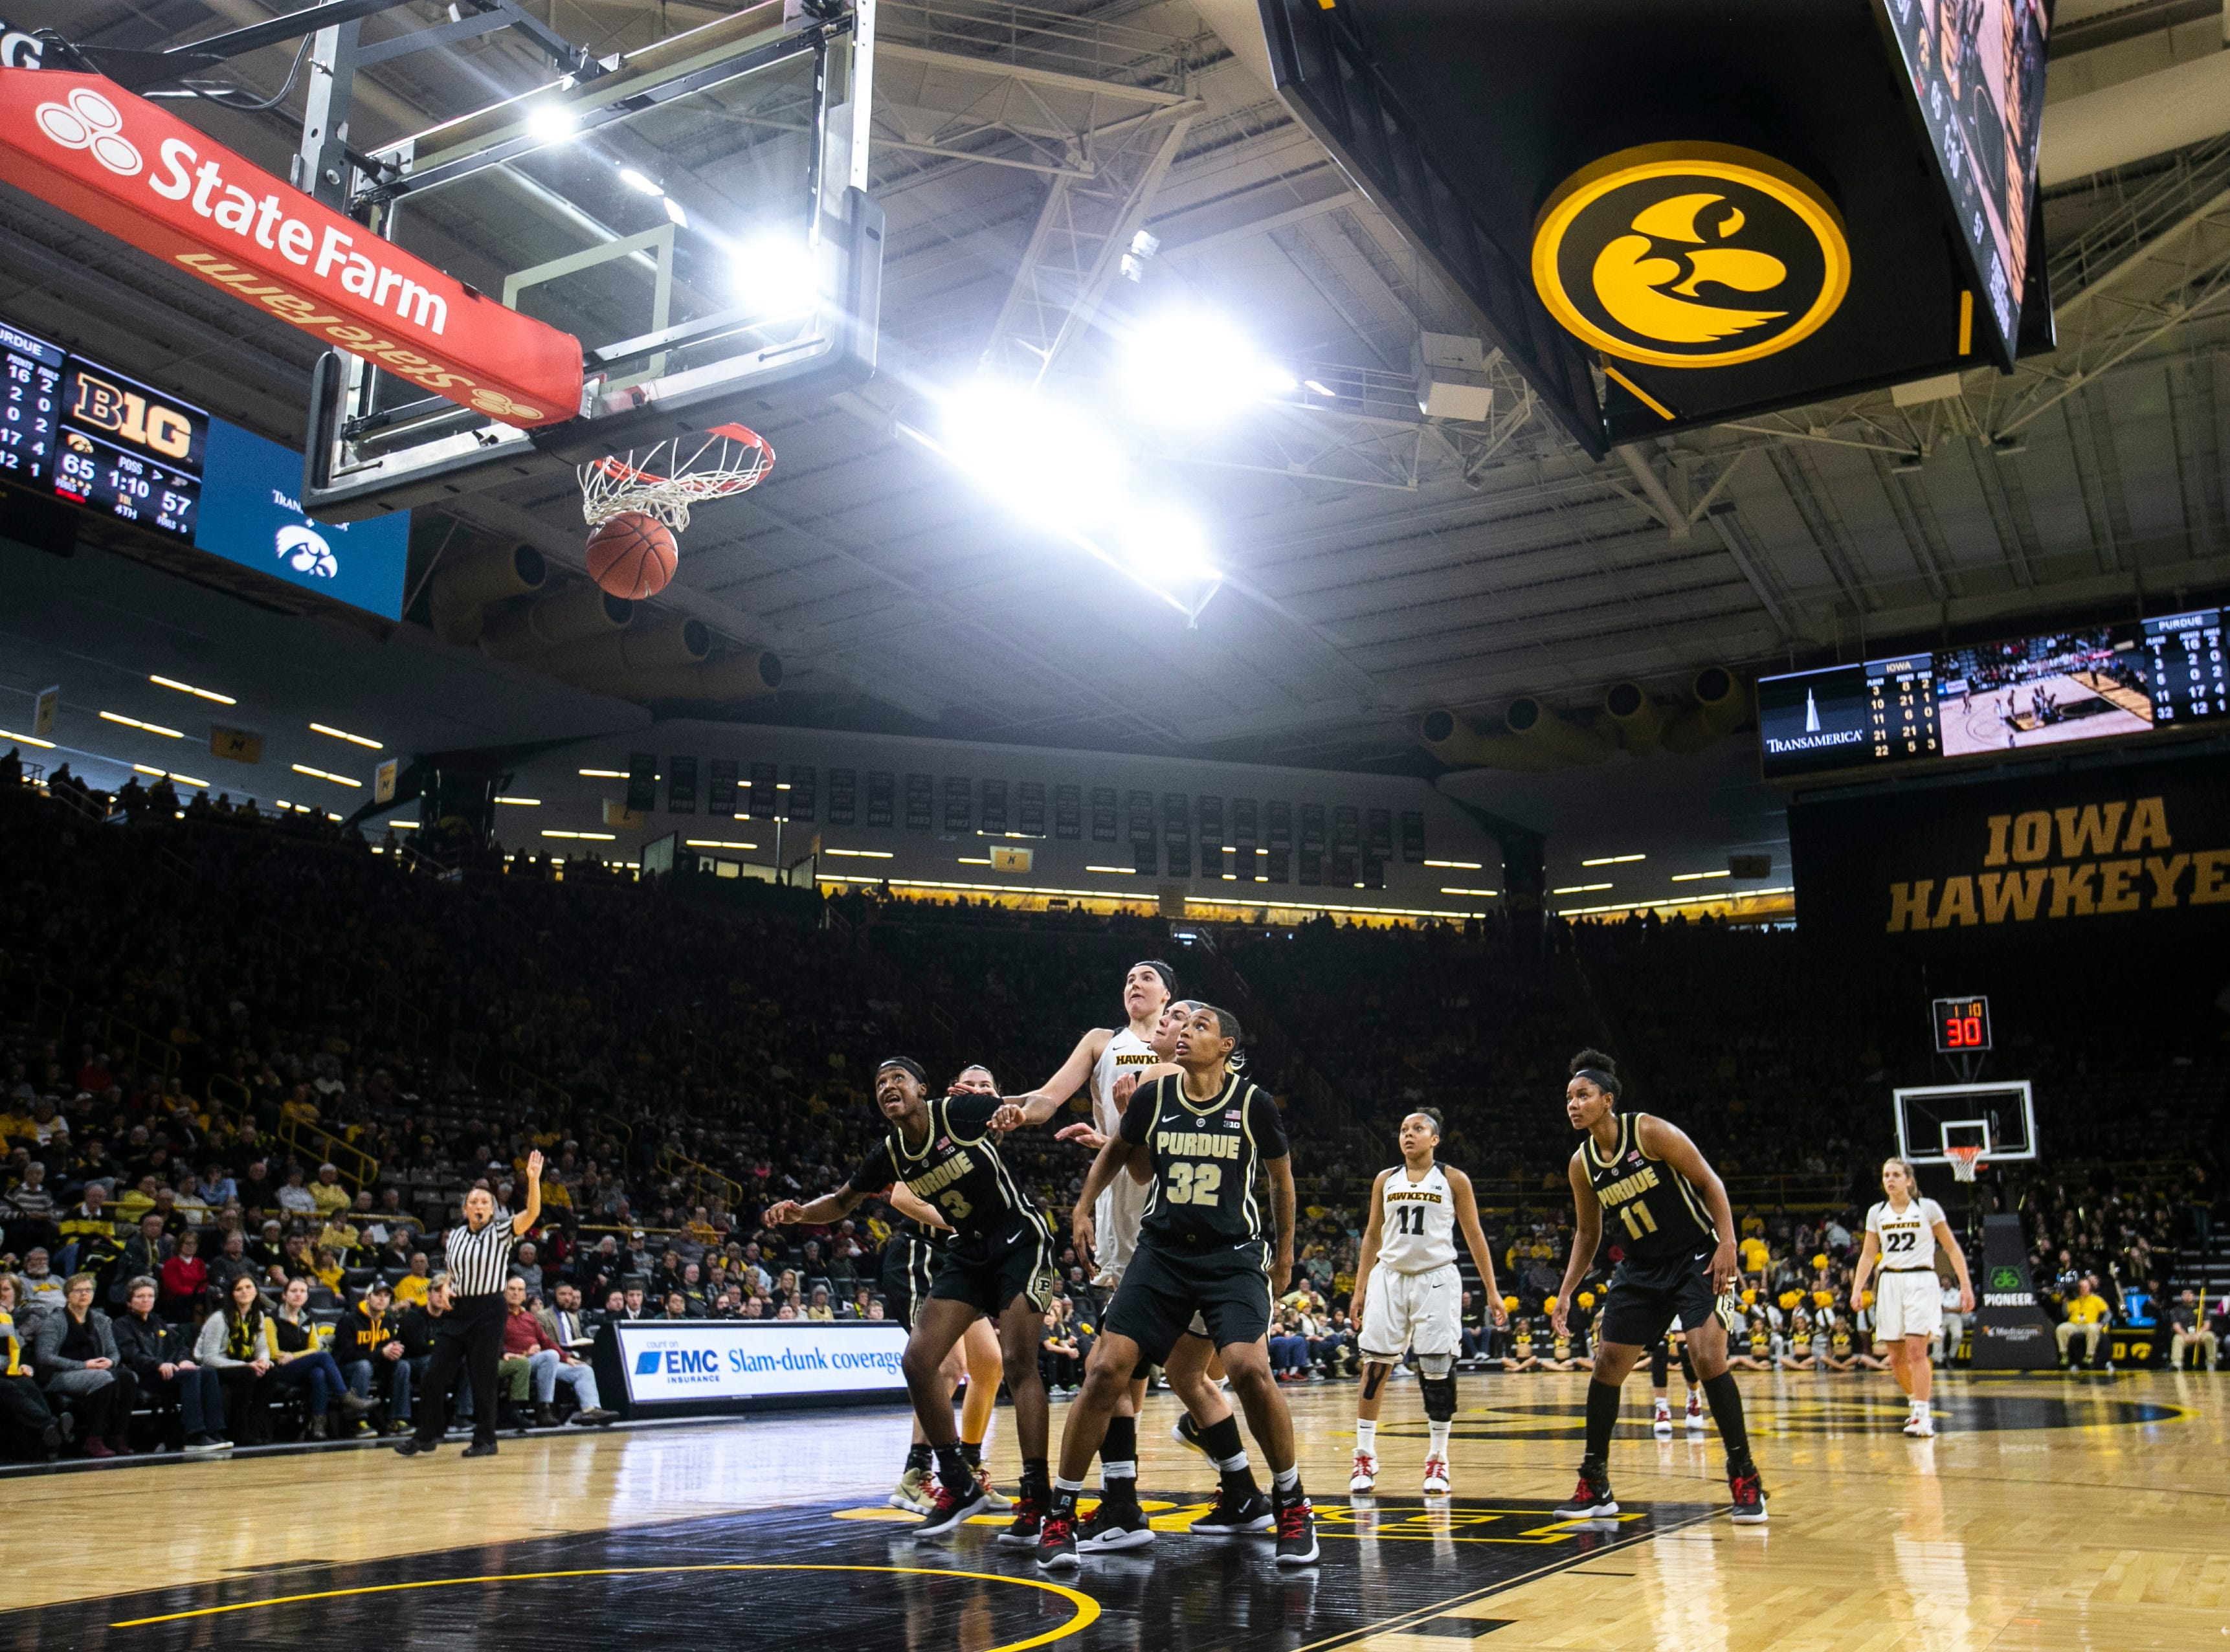 Iowa guard Tania Davis (11) looks on as her free-throw falls through the basket during a NCAA Big Ten Conference women's basketball game on Sunday, Jan. 27, 2019, at Carver-Hawkeye Arena in Iowa City, Iowa.